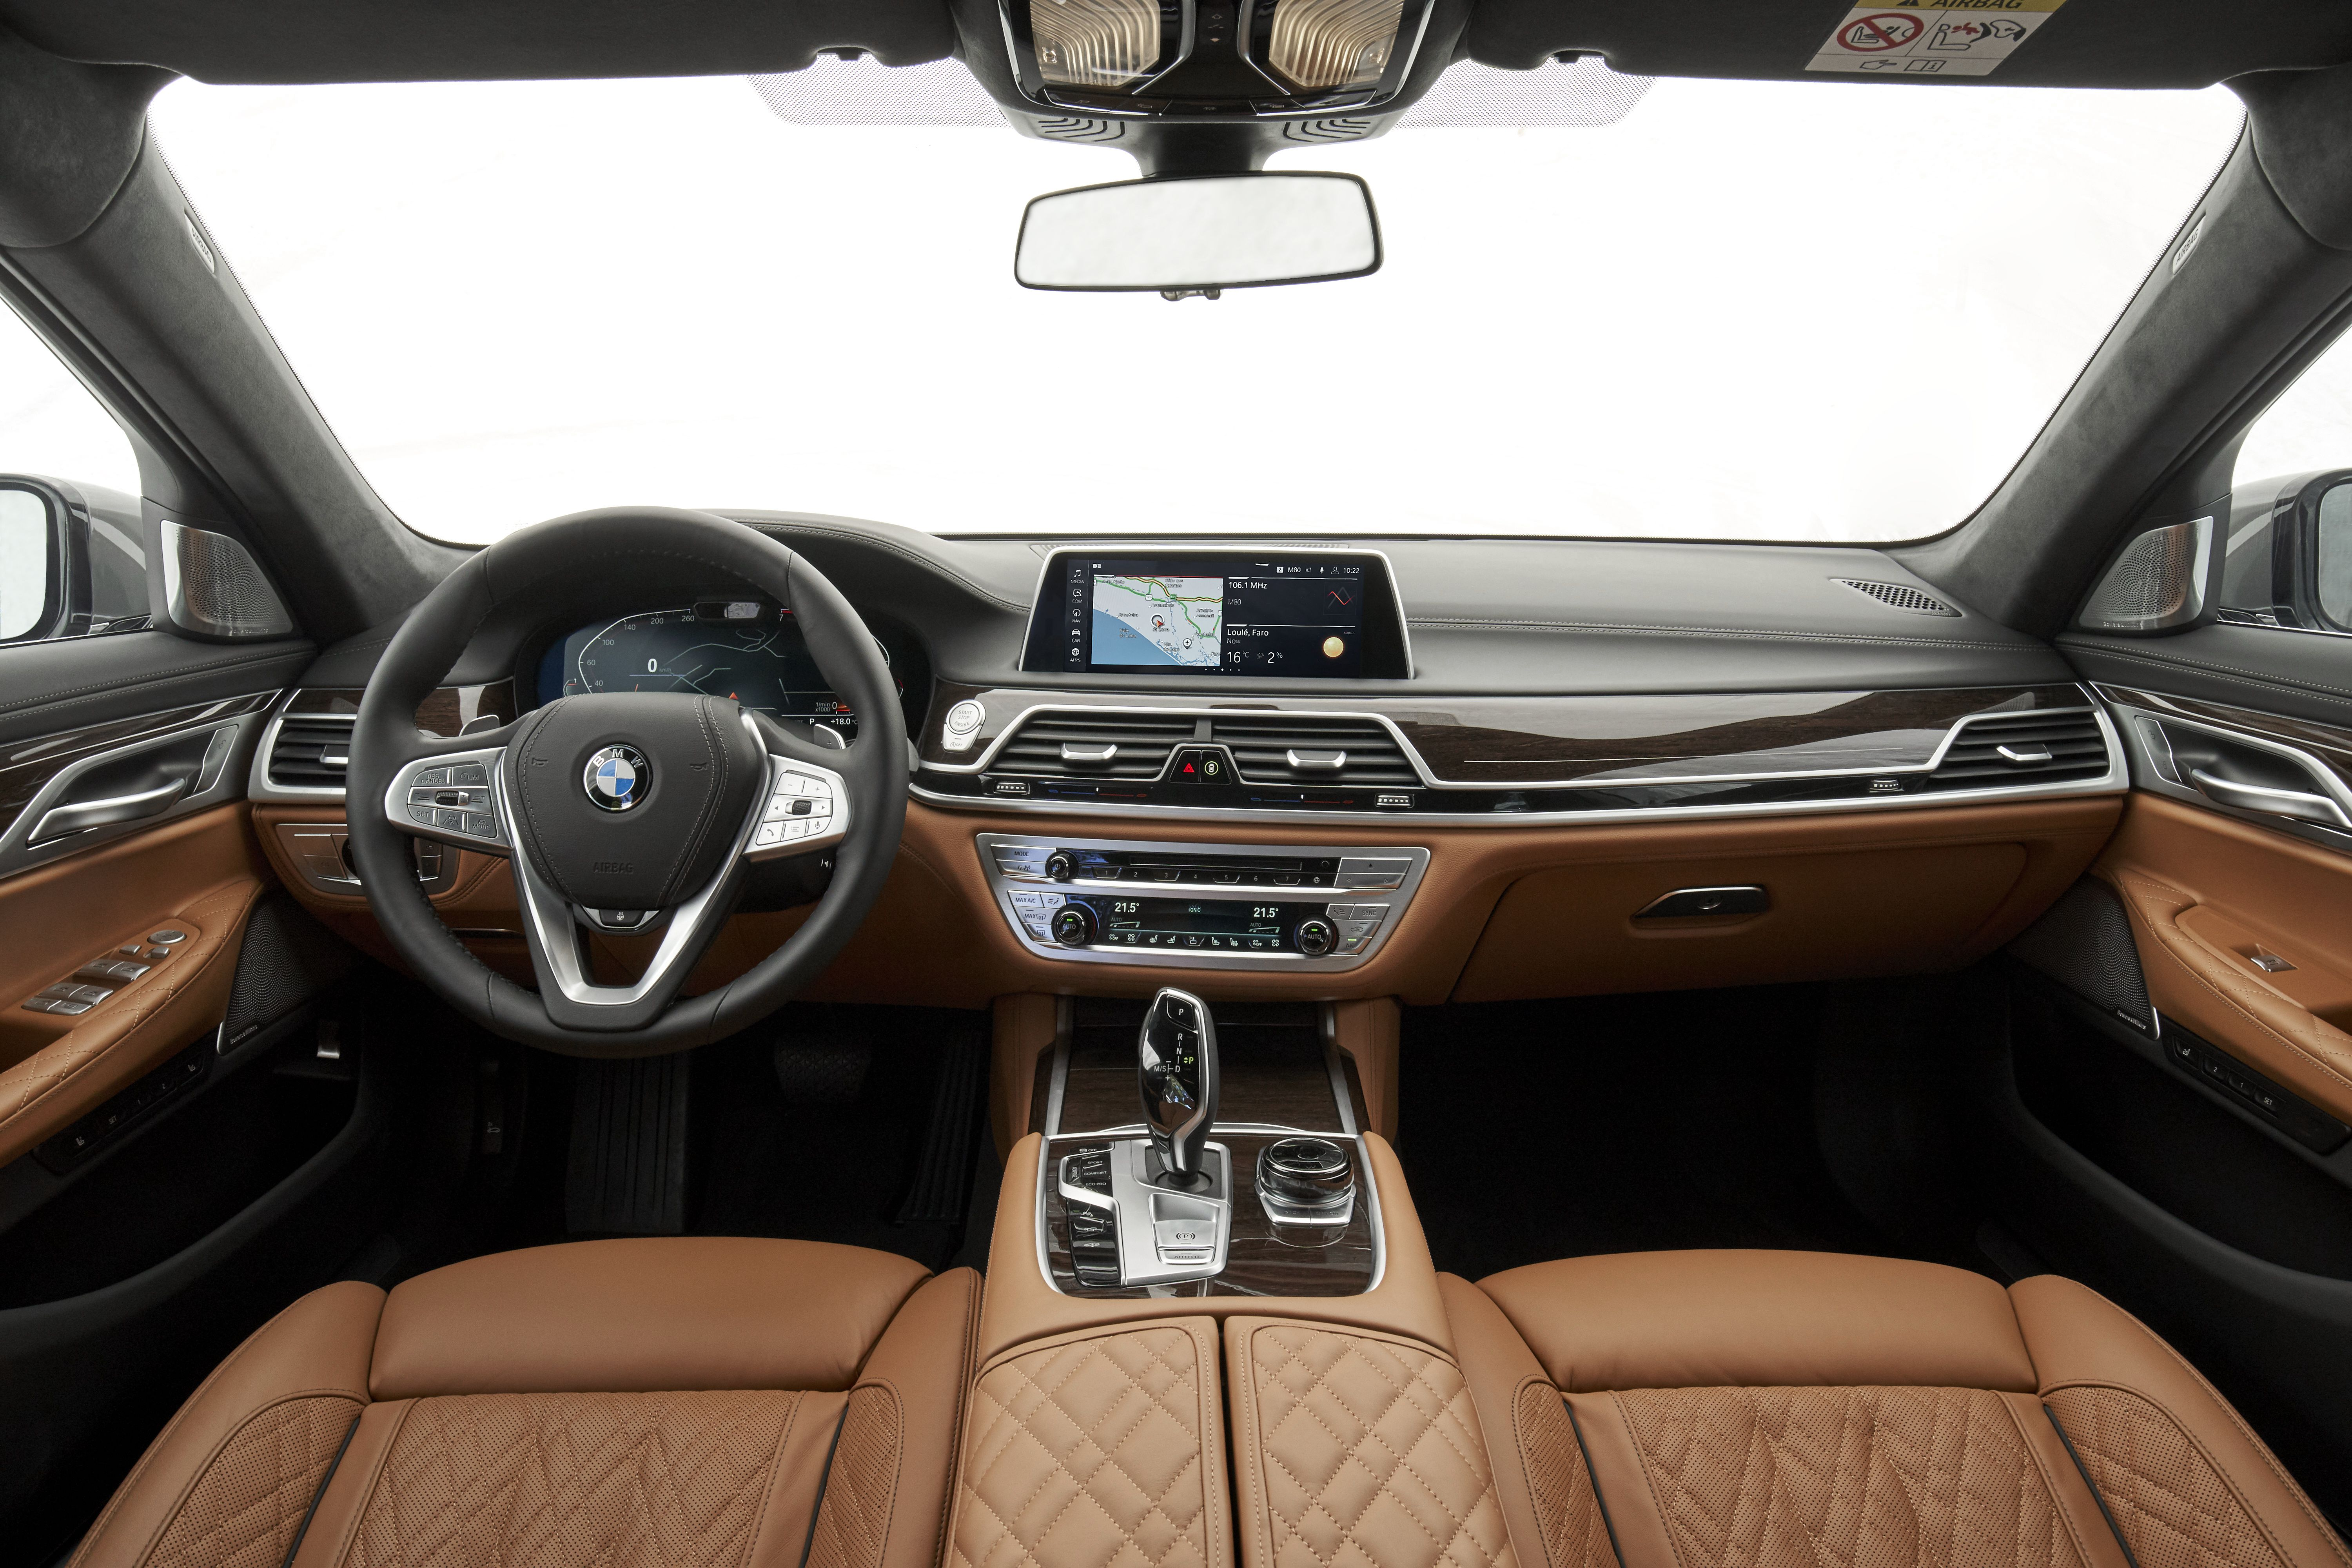 Pin By Bmw Life On Auto In 2020 New Bmw Bmw 7 Series Bmw